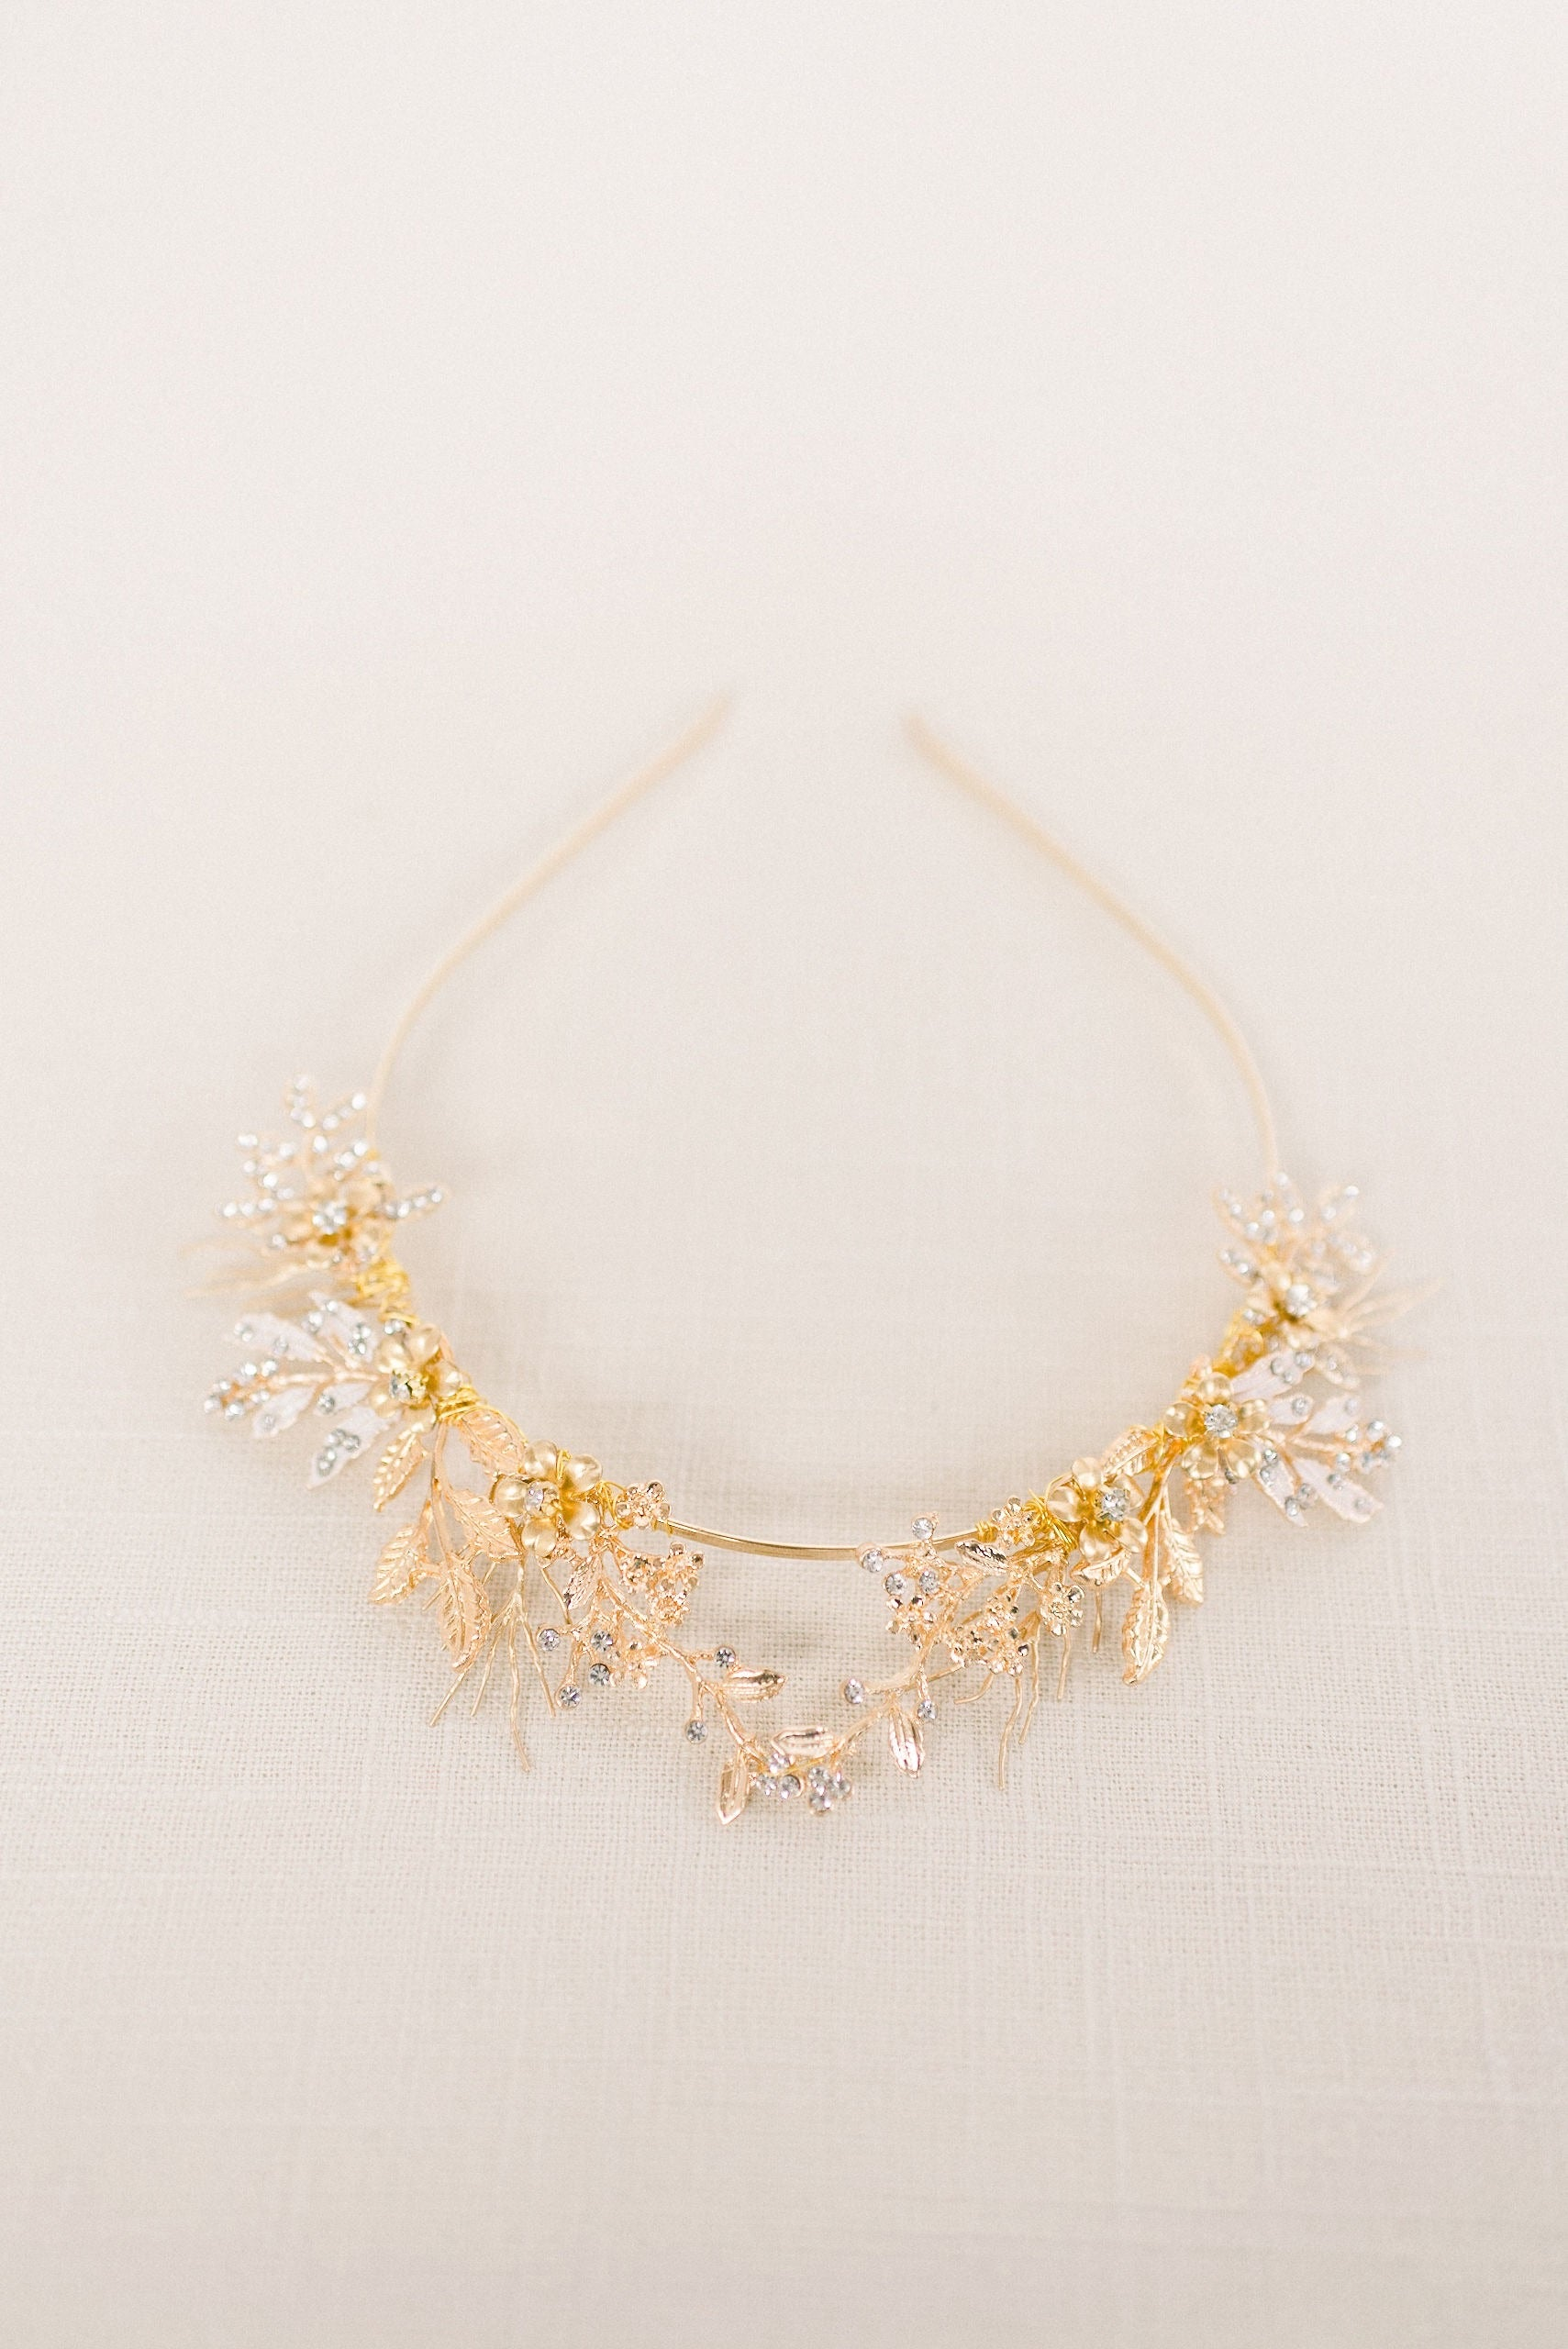 Gold woodland tiara crown - style 4010 - Tessa Kim